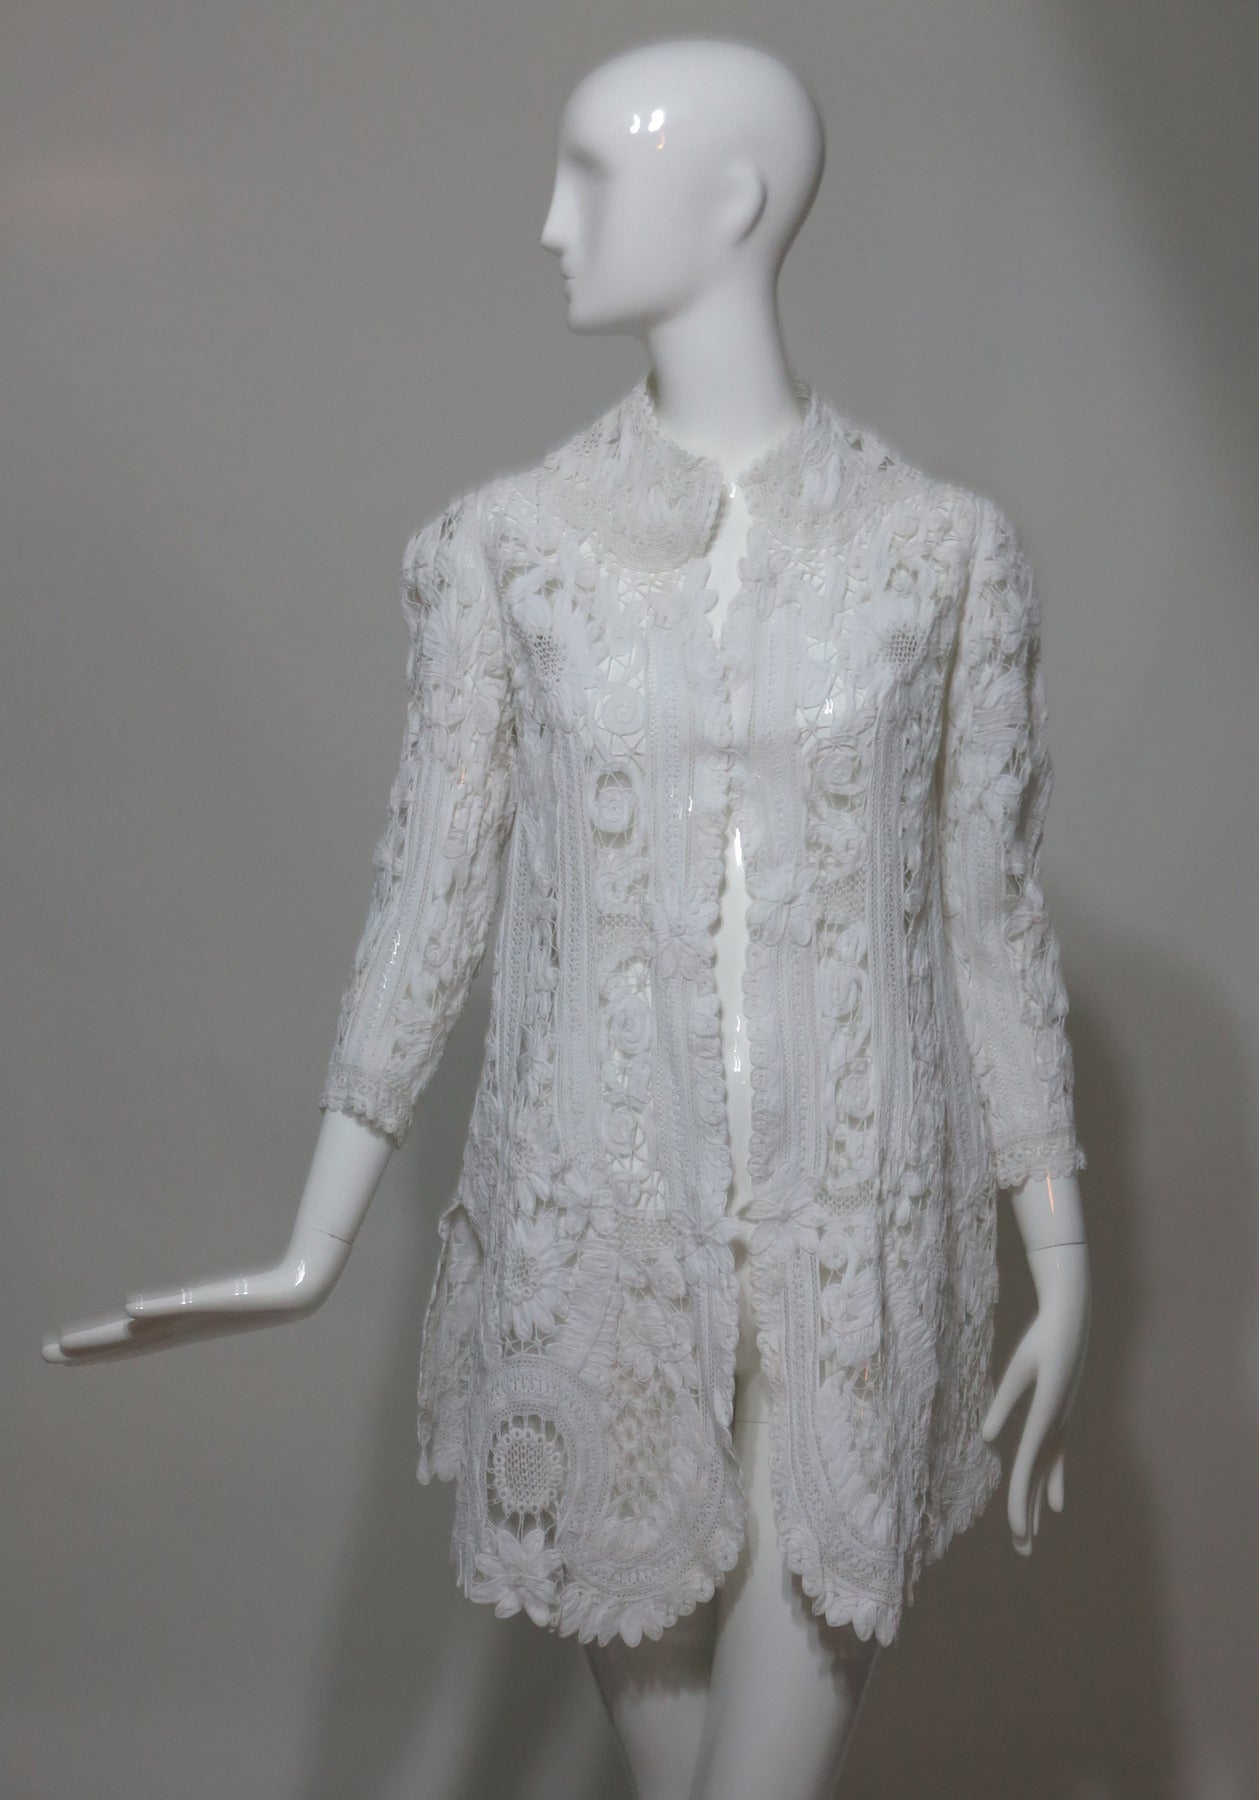 Battenburg Victorian white tape lace coat...Beautiful white lace coat from the late 1800s, white cotton floral tape lace design below hip length coat has bracelet length sleeves, an open front, stand up collar/neckline, slightly fitted through the